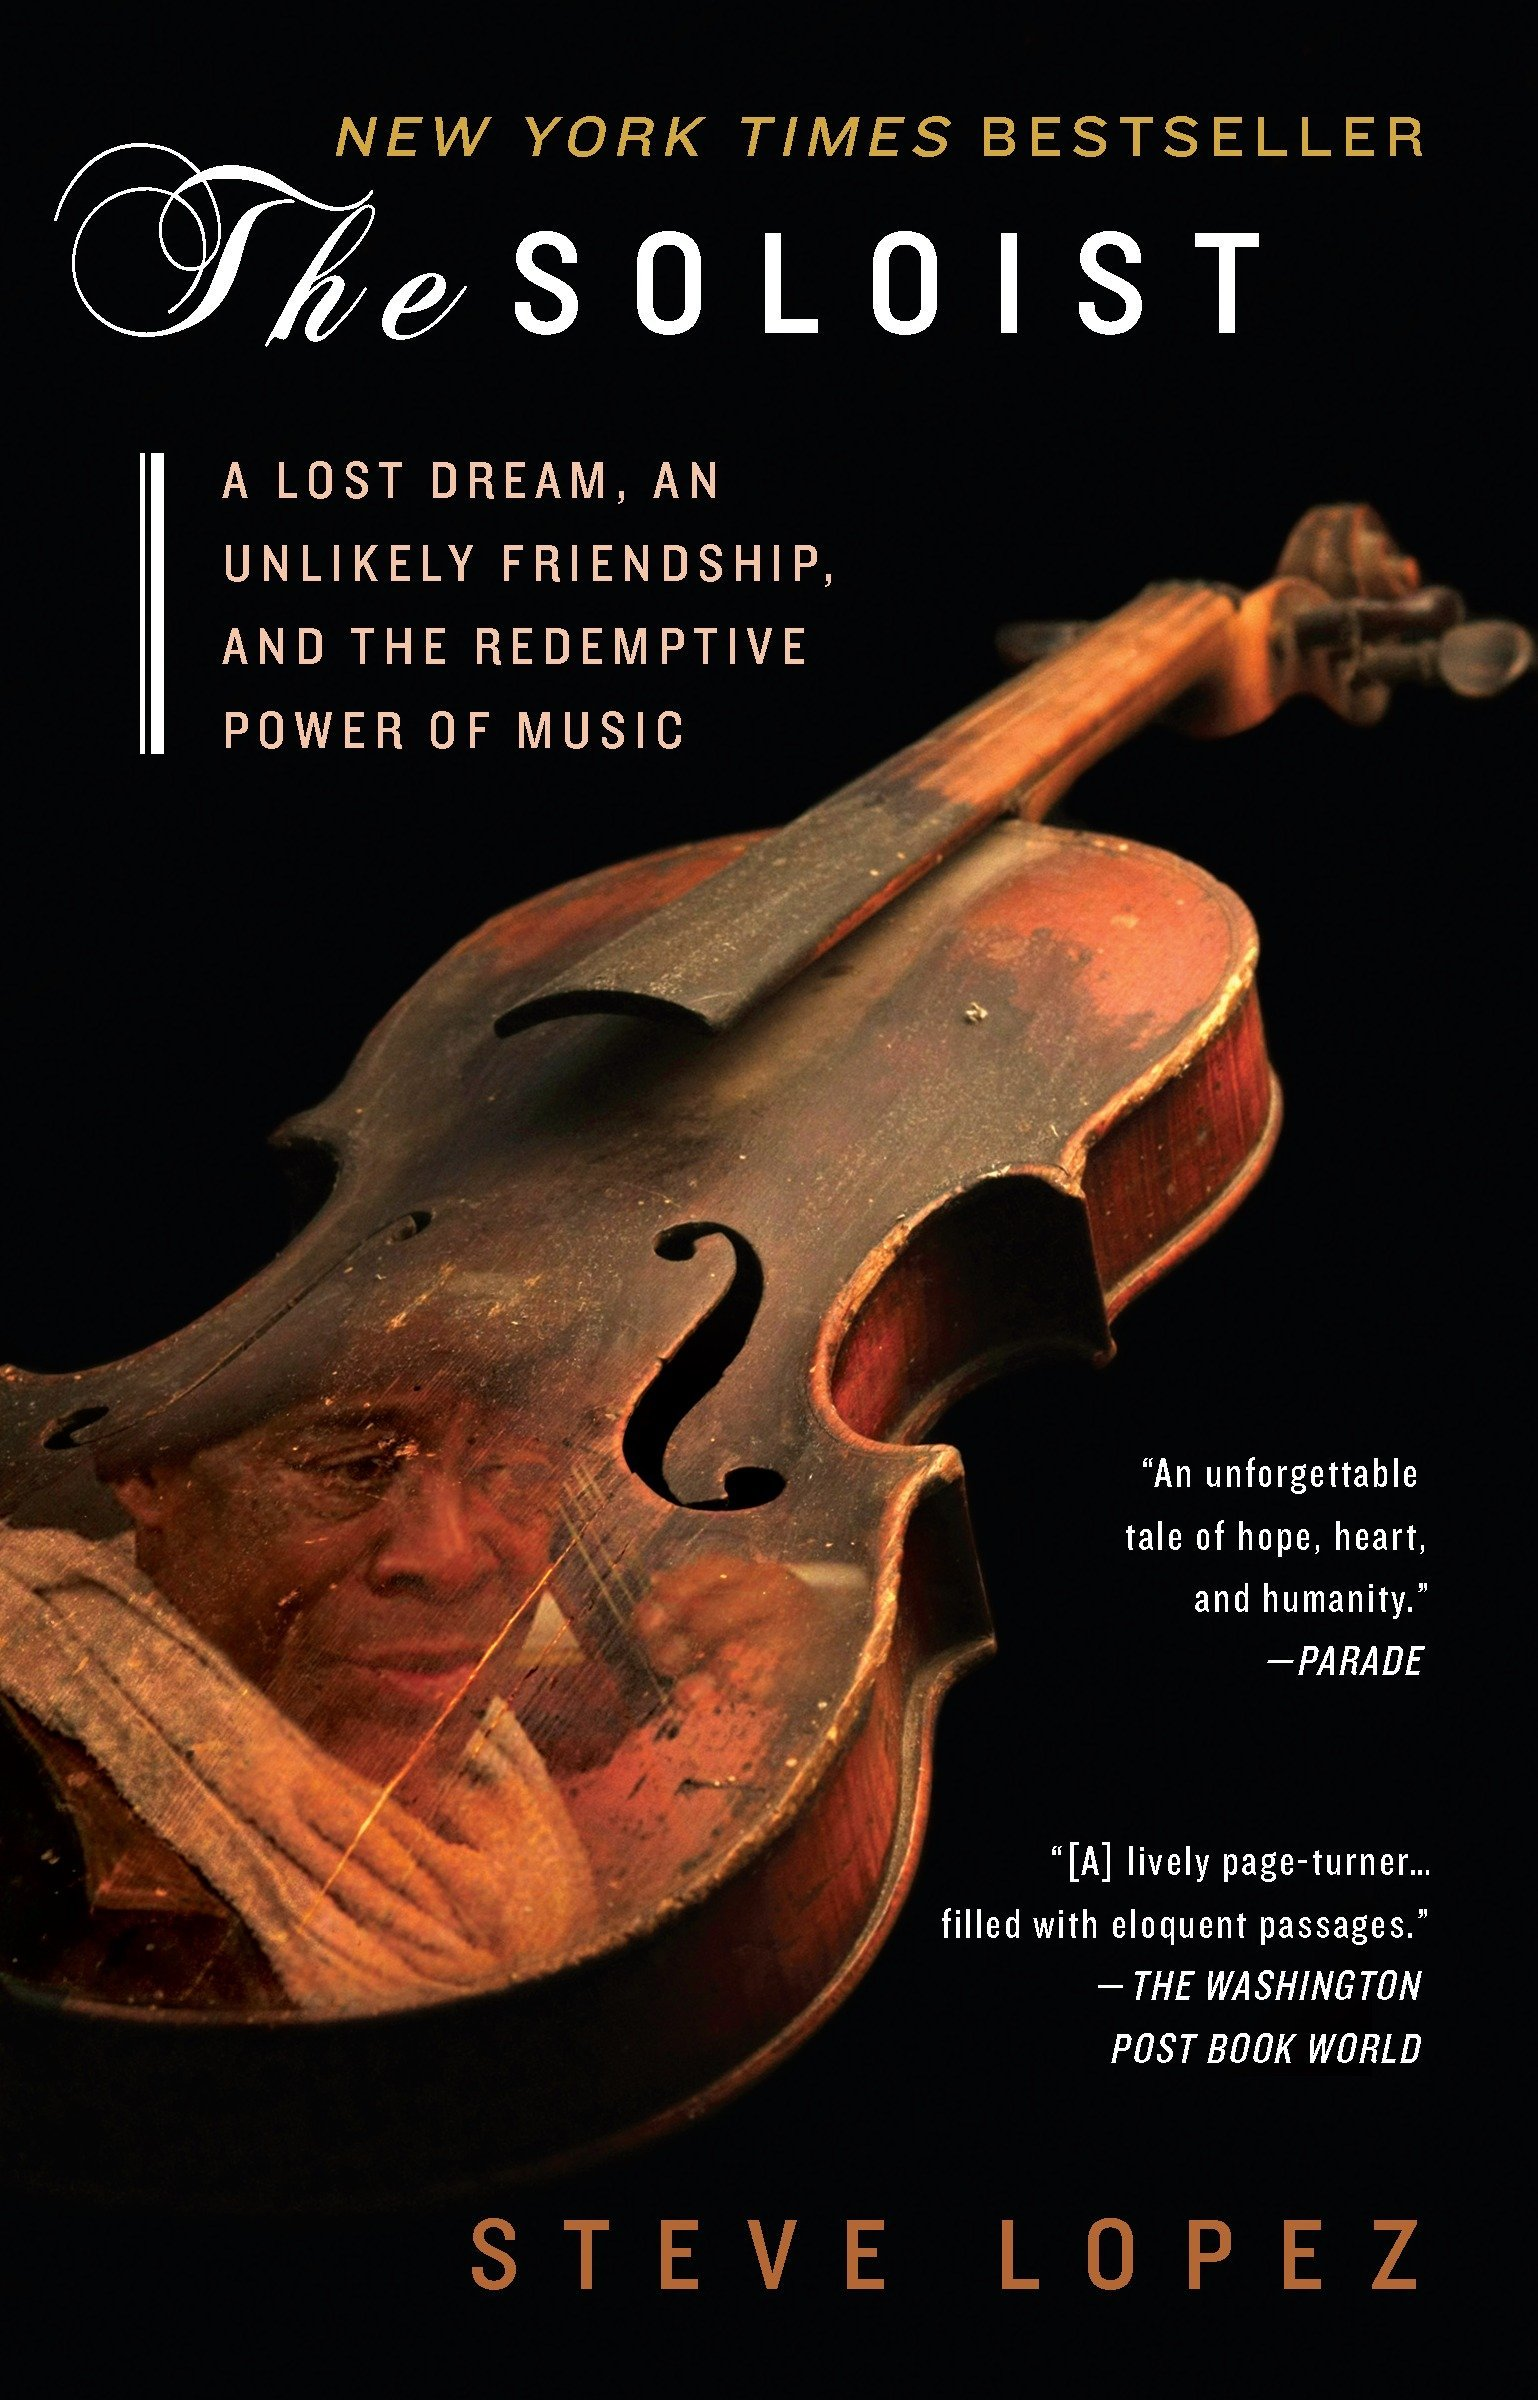 The soloist a lost dream an unlikely friendship and the the soloist a lost dream an unlikely friendship and the redemptive power of music steve lopez 9780425238363 amazon books fandeluxe